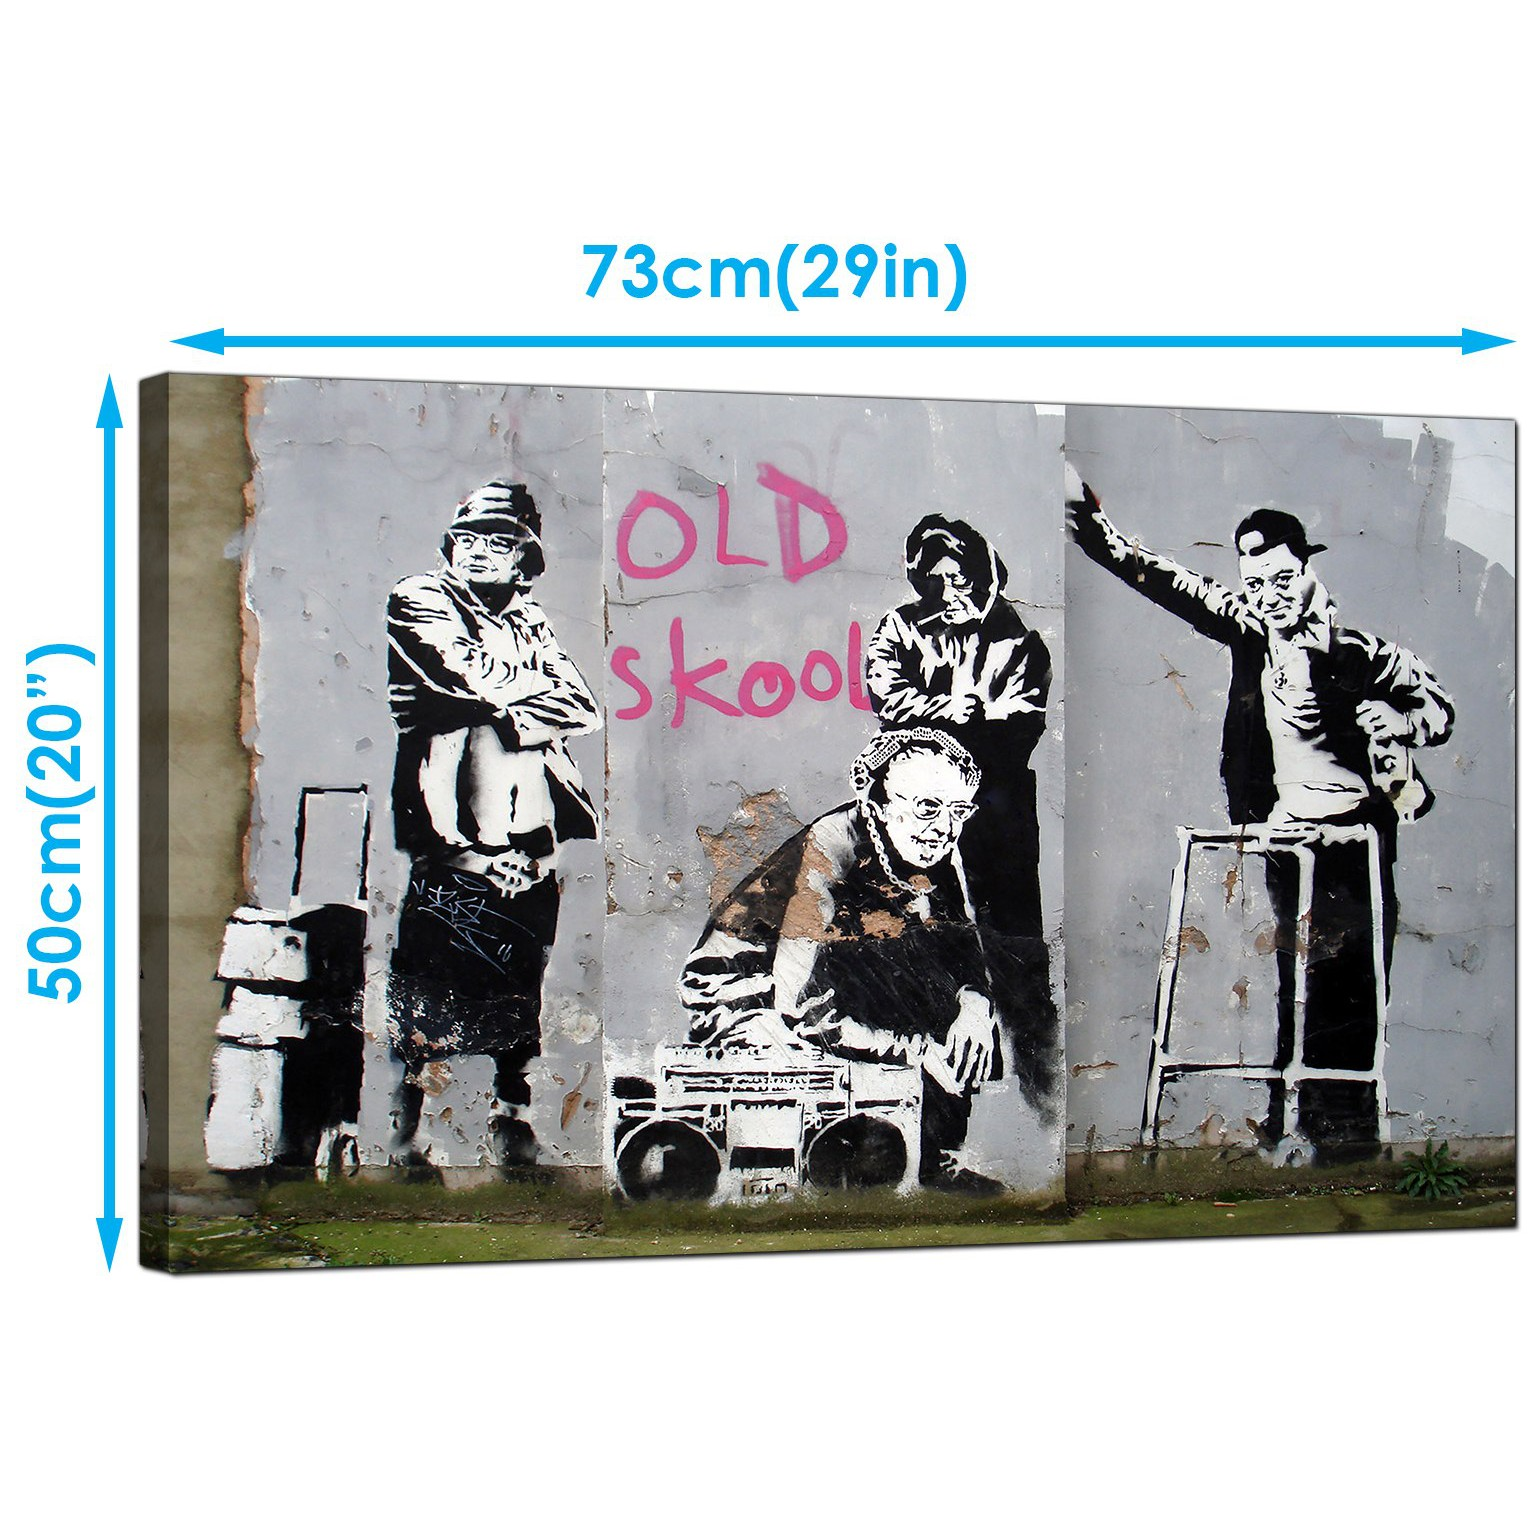 Display gallery item 3 · banksy canvas art prints old skool b boy grannies graffiti art display gallery item 4